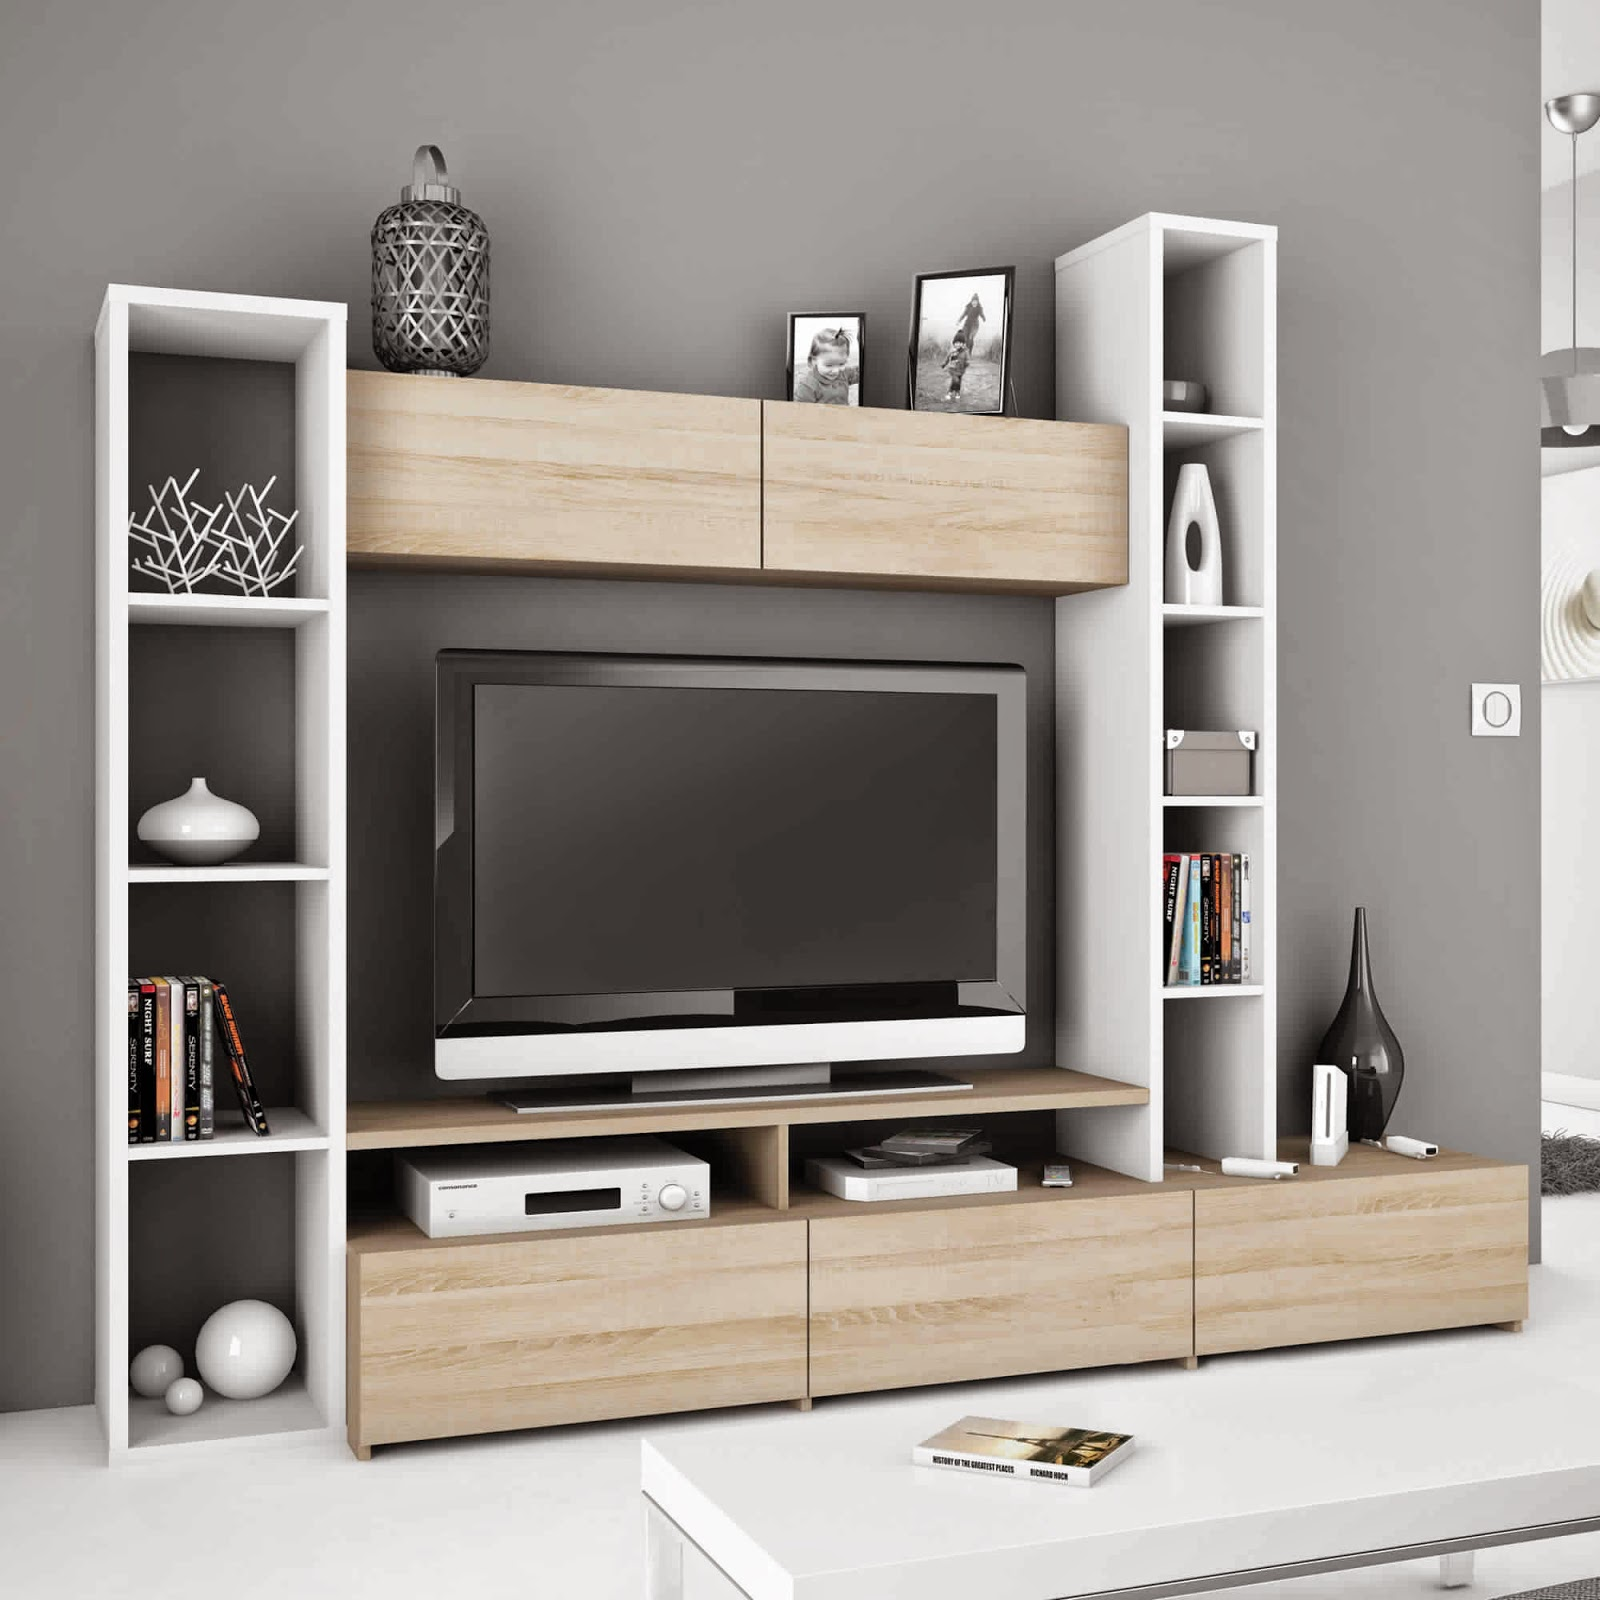 meuble tv haut noir meuble tv haut noir meuble tv mural. Black Bedroom Furniture Sets. Home Design Ideas